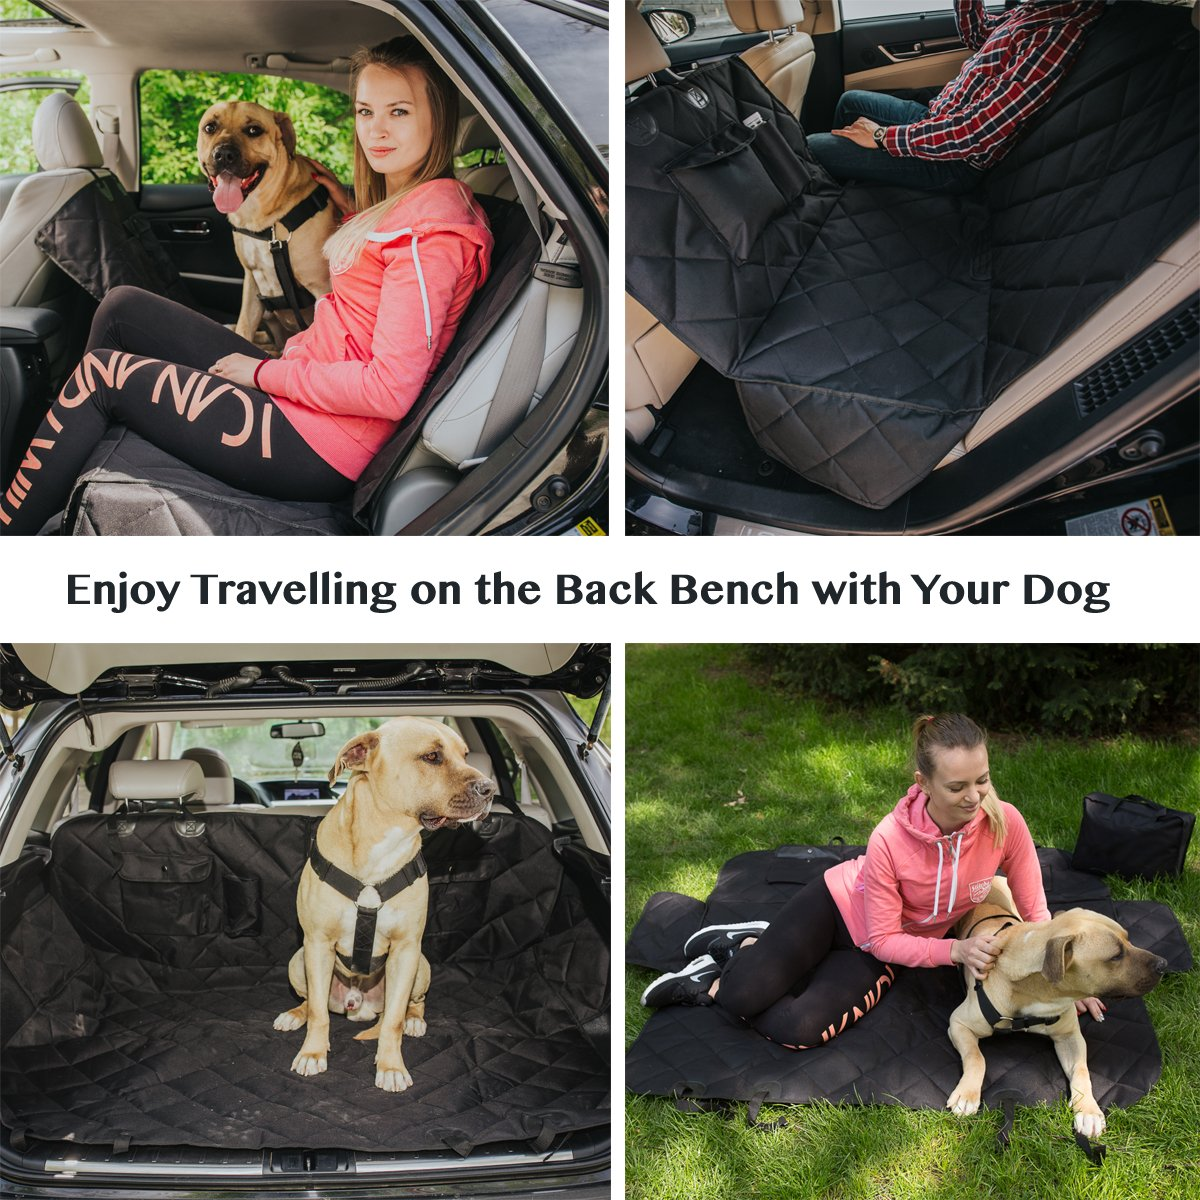 EVOest Dog Car Seat Cover for Cars/Trucks/SUV's,Hammock Convertible, Waterproof Pet Back Seat Protector with Extra Side Flaps, Bonus Pet Seat Belt & Carry Bag (Medium) by EVOest (Image #5)